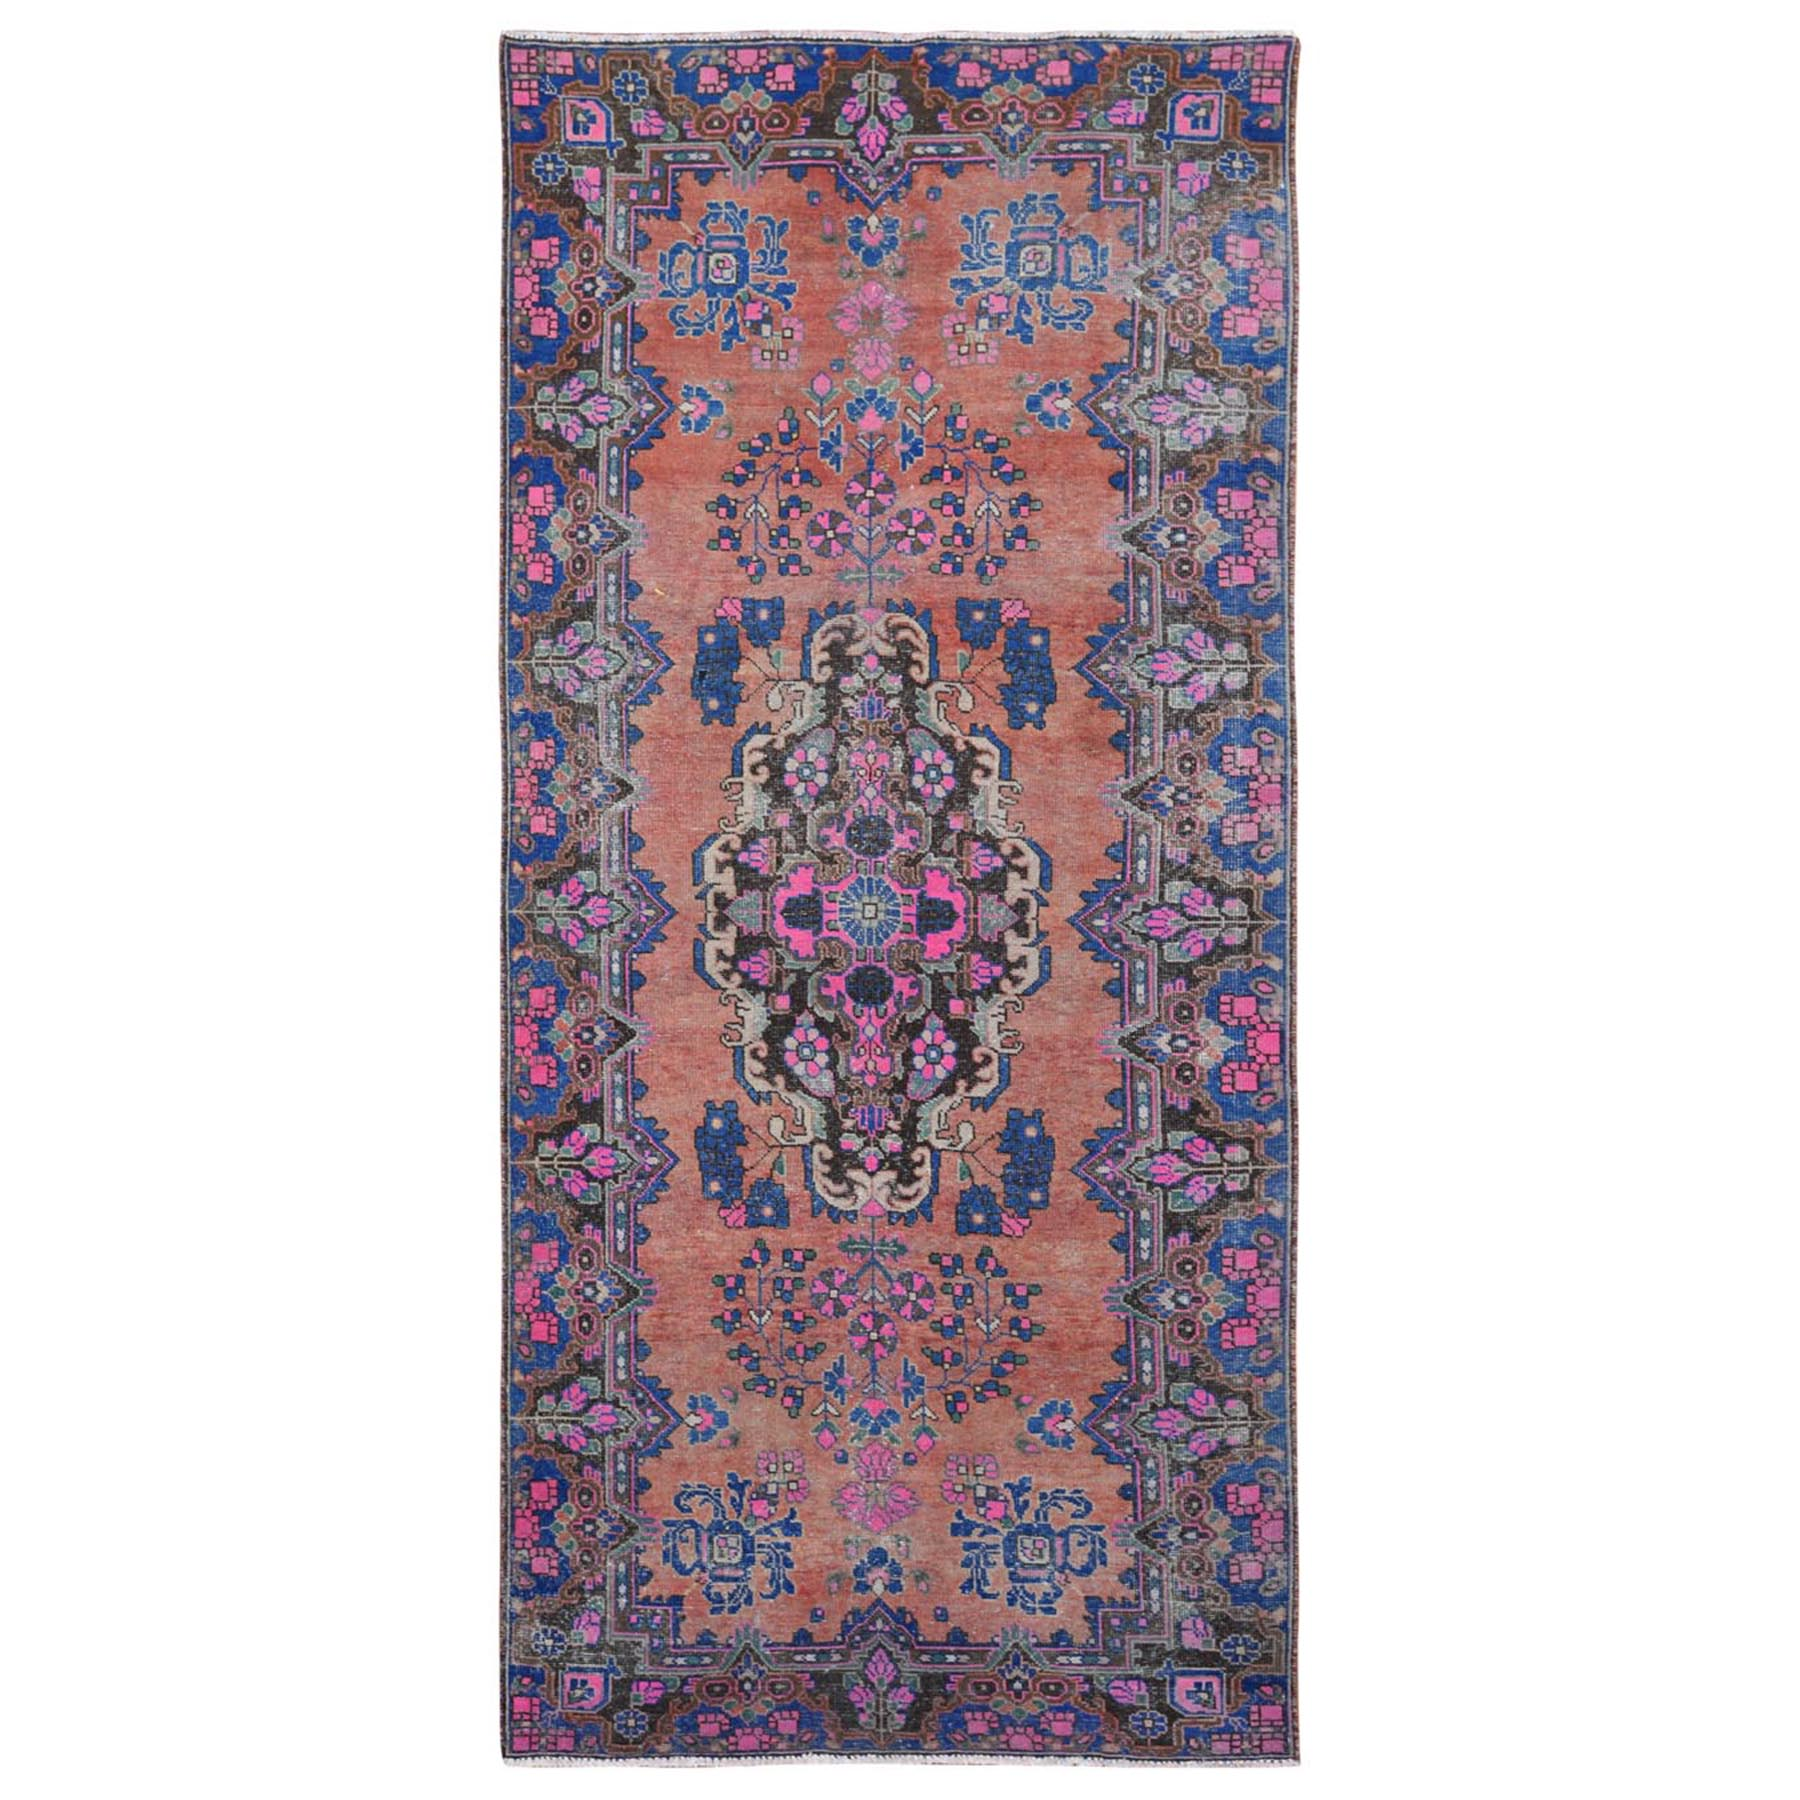 Fetneh Collection And Vintage Overdyed Collection Hand Knotted Orange Rug No: 1115742